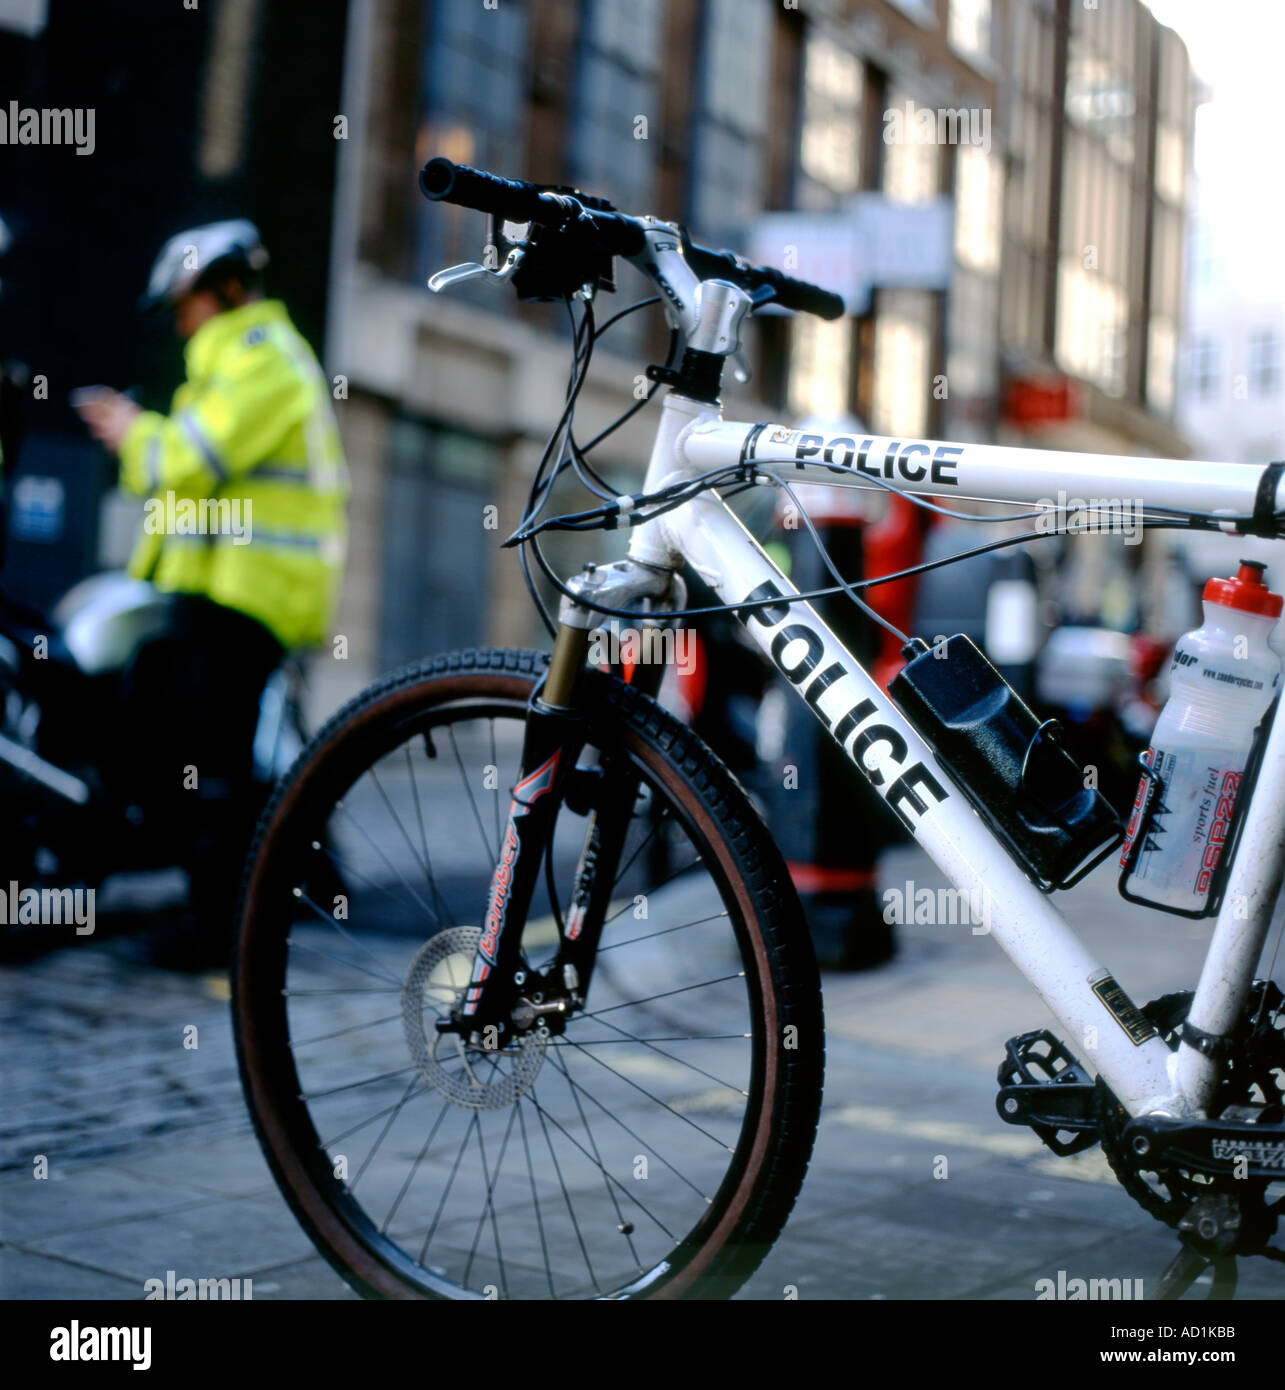 Police bicycle in London street with a policeman writing a ...